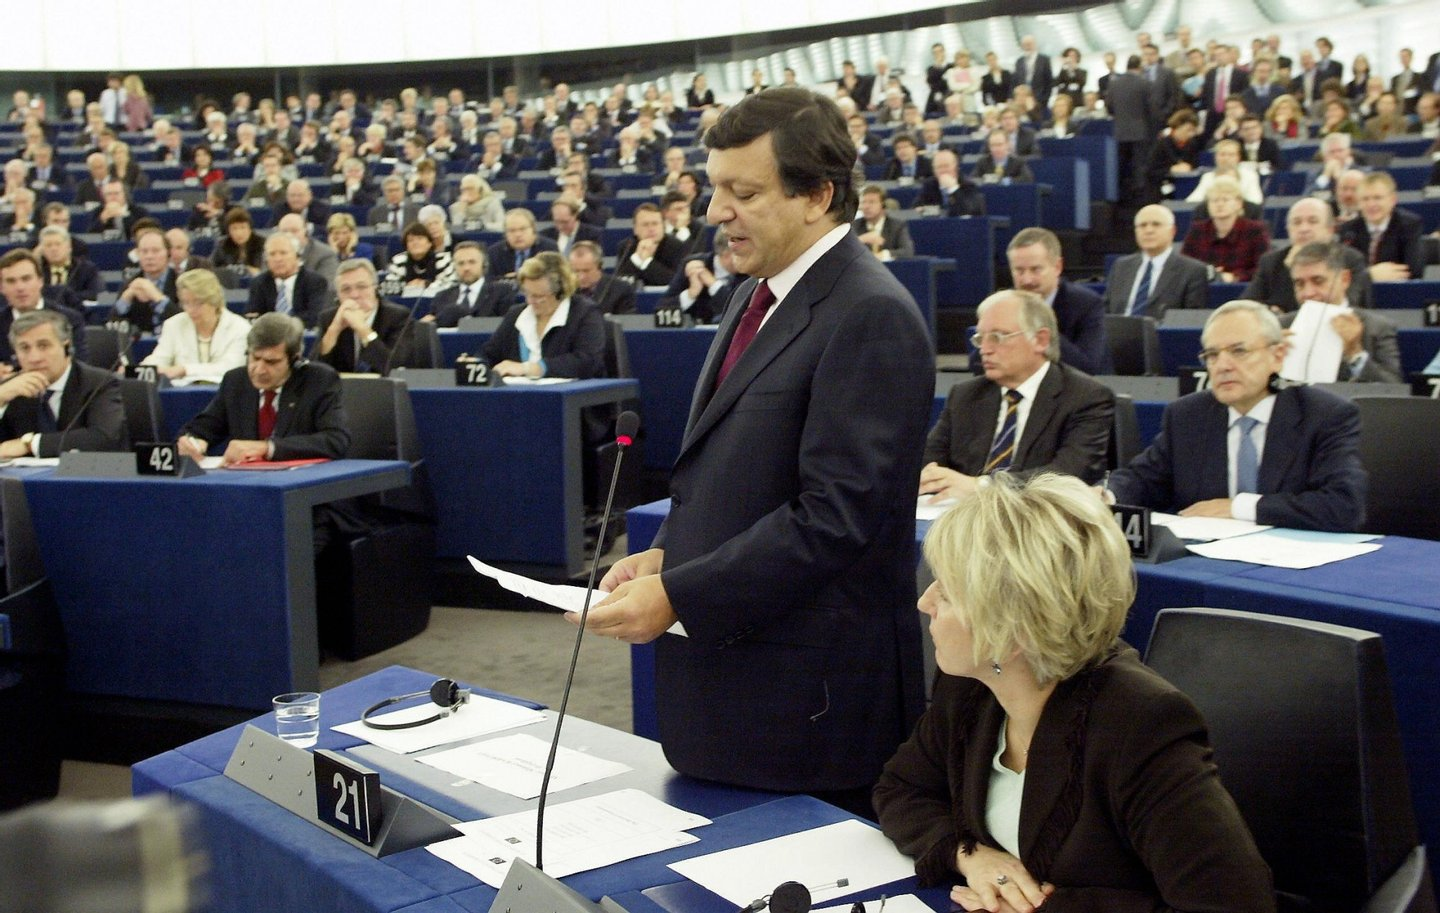 Strasbourg, FRANCE:  European Commission chief Jose Manuel Barroso speaks 27 October 2004 at the European Parliament in Strasbourg. Incoming EU Commission chief Jose Manuel Barroso today withdrew his proposed EU executive team in the face of a veto threat, backing down in a high-stakes standoff with the European Parliament.            AFP PHOTO GERARD CERLES  (Photo credit should read GERARD CERLES/AFP/Getty Images)